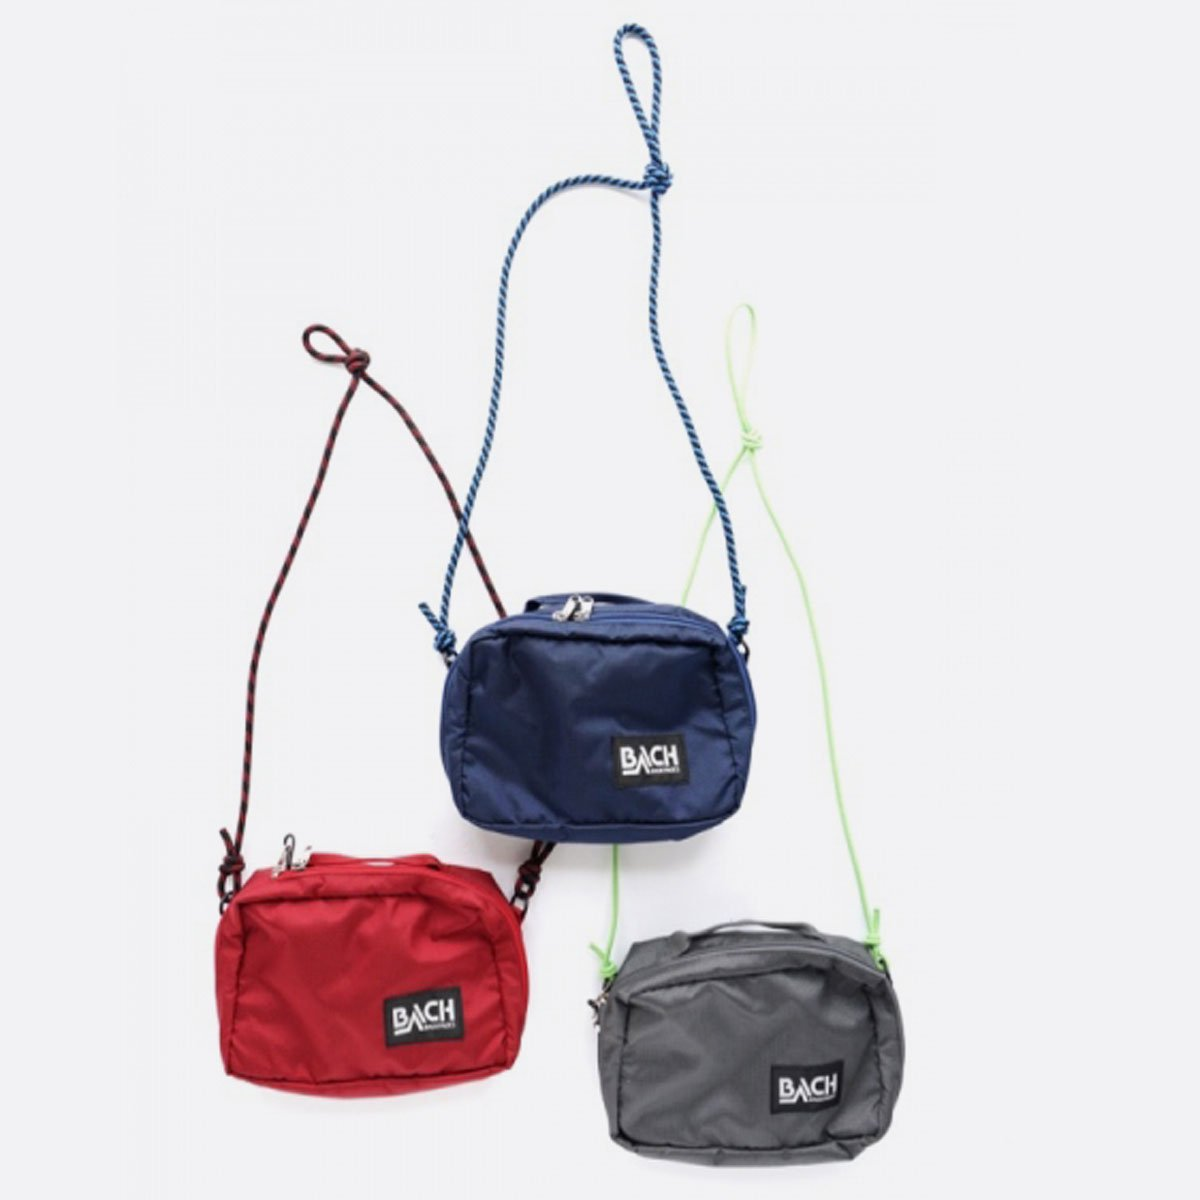 BACH ACCESSORY BAG M  (Pearl) (Red) (Blue)